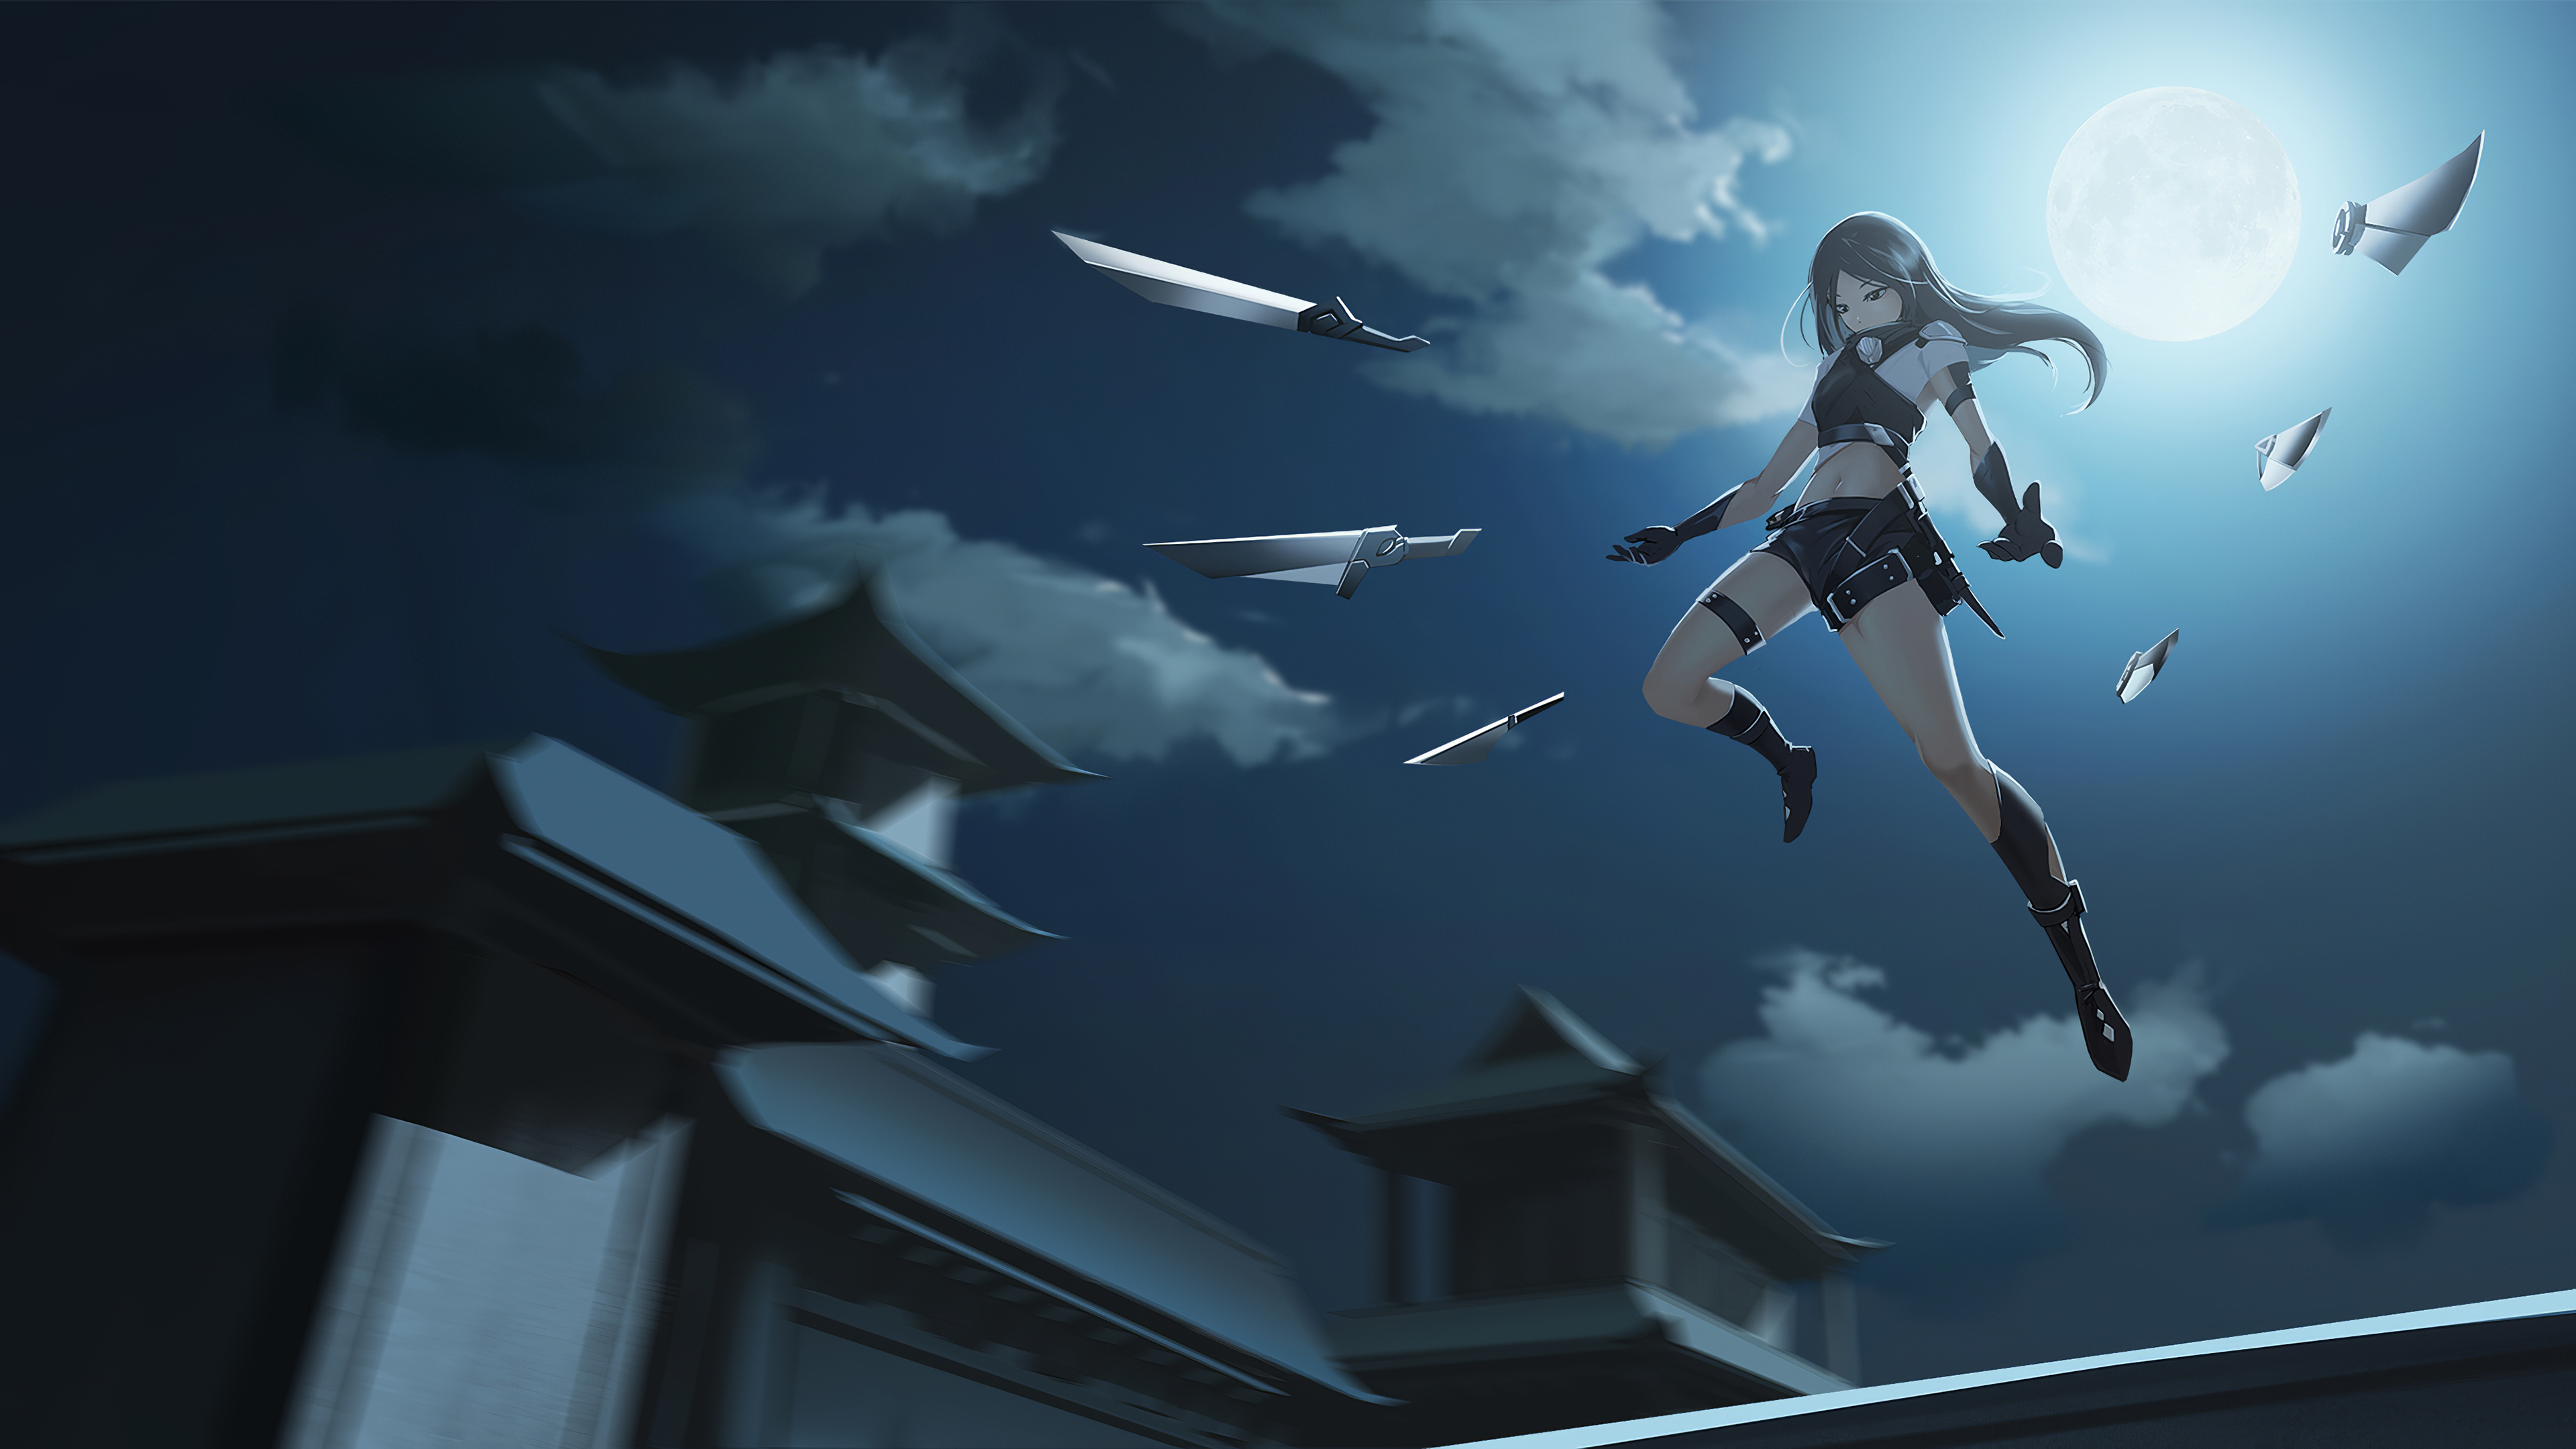 anime Girls, Sword, Weapon, Realistic Wallpapers HD